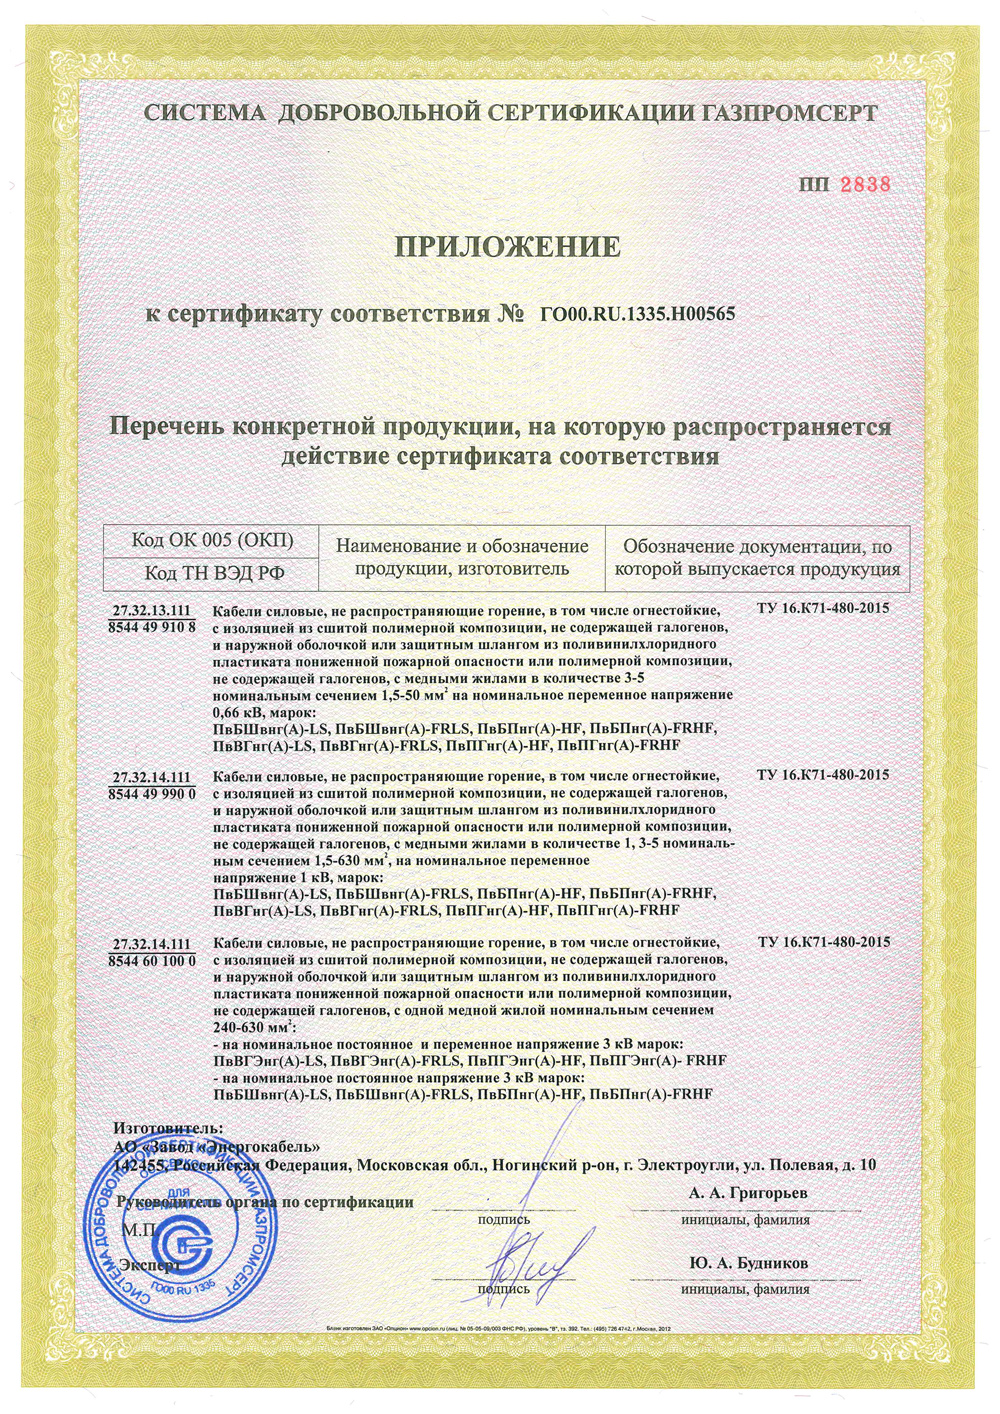 The appendix №1 to the certificate of Conformity №ГО00.RU.1335.Н00565.